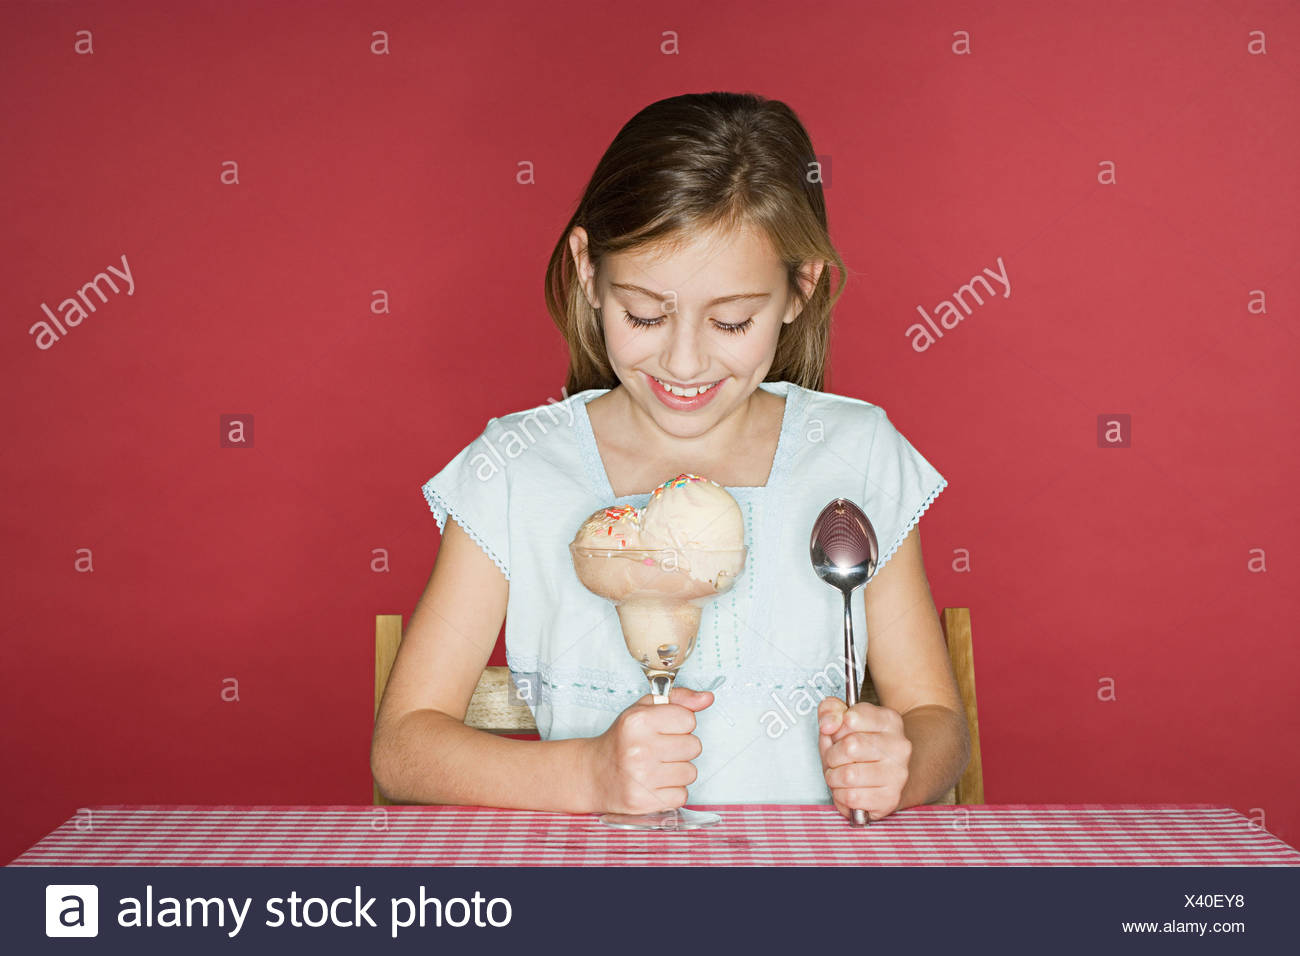 Girl about to eat ice cream - Stock Image